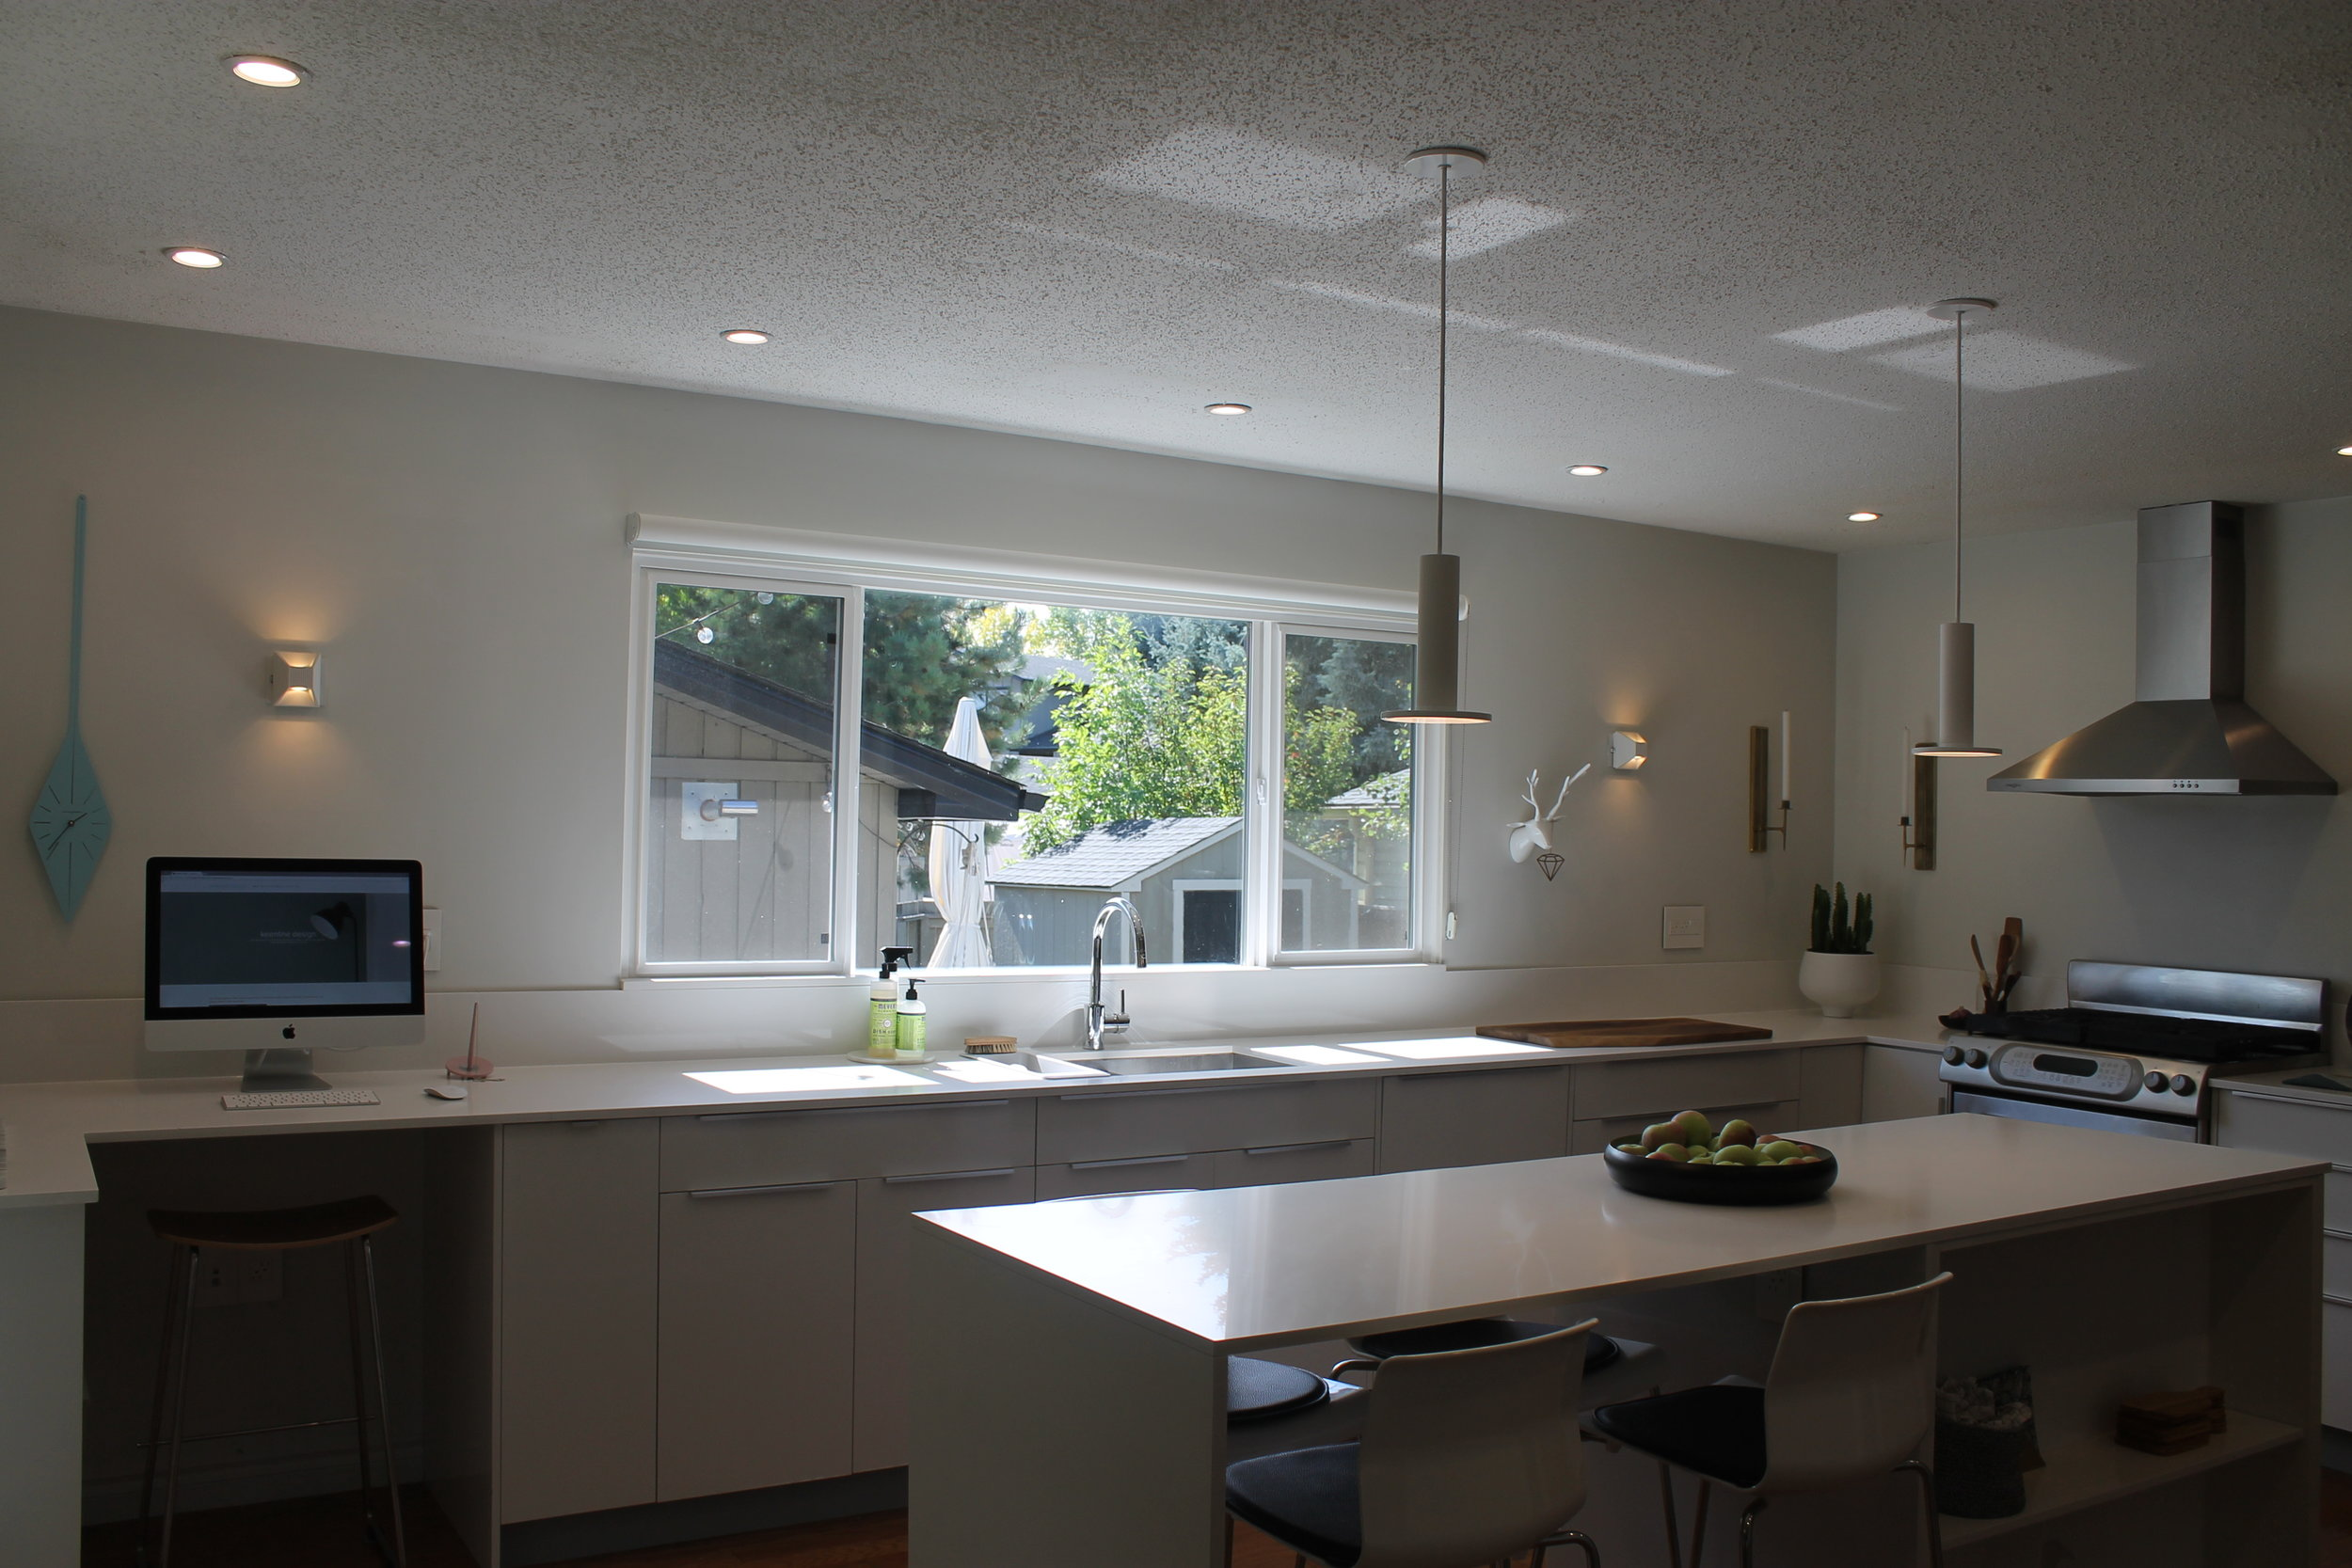 kitchen after (home 2)